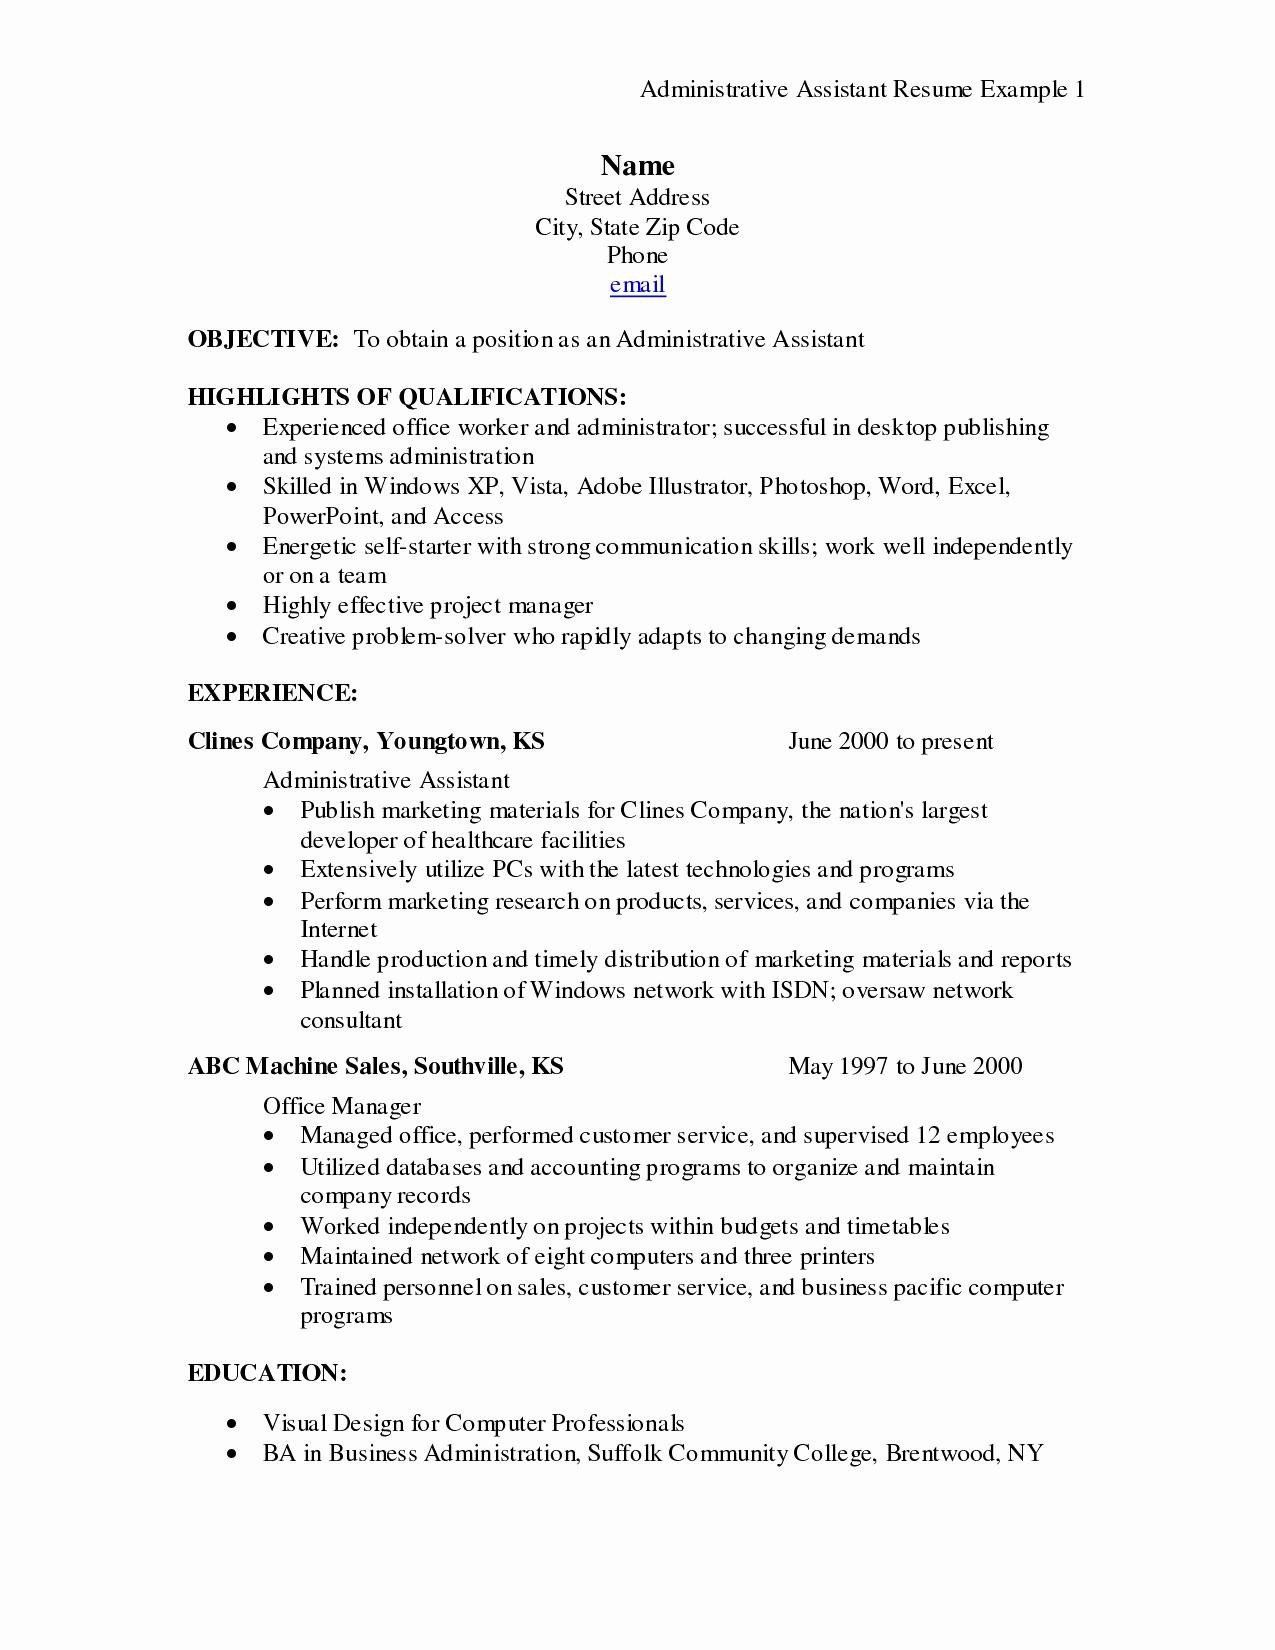 medical administrative assistant resume sample new templates examples receptionist jobs Resume Administrative Assistant Resume Examples 2020